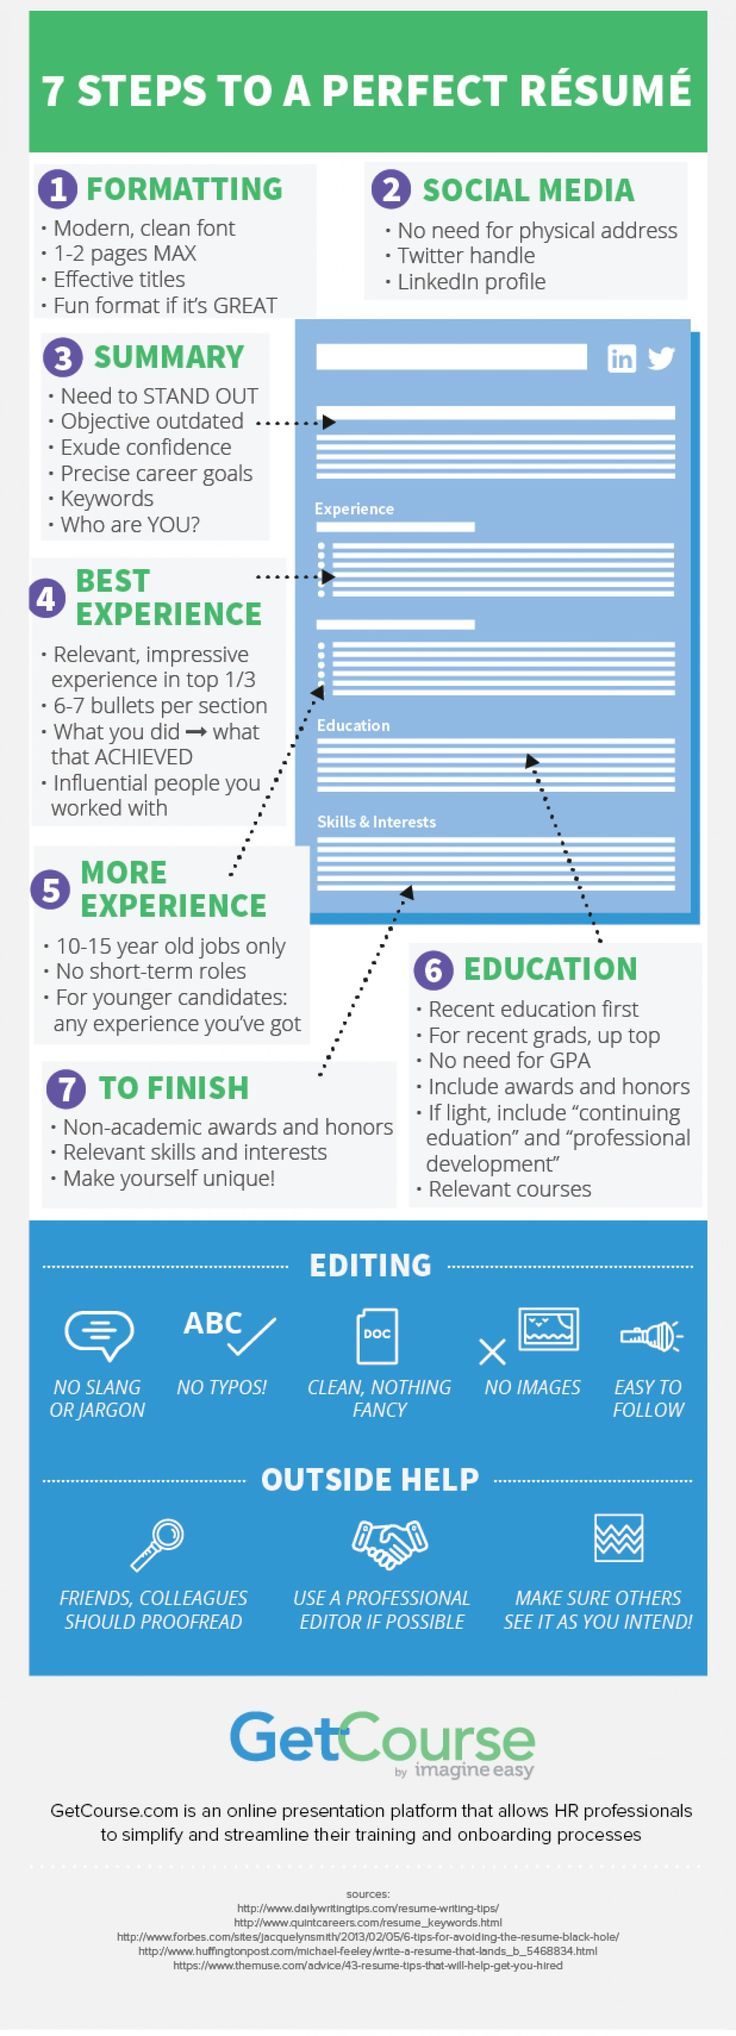 Career Advisor Resume Stunning 188 Best Resume Images On Pinterest  Resume Resume Design And .